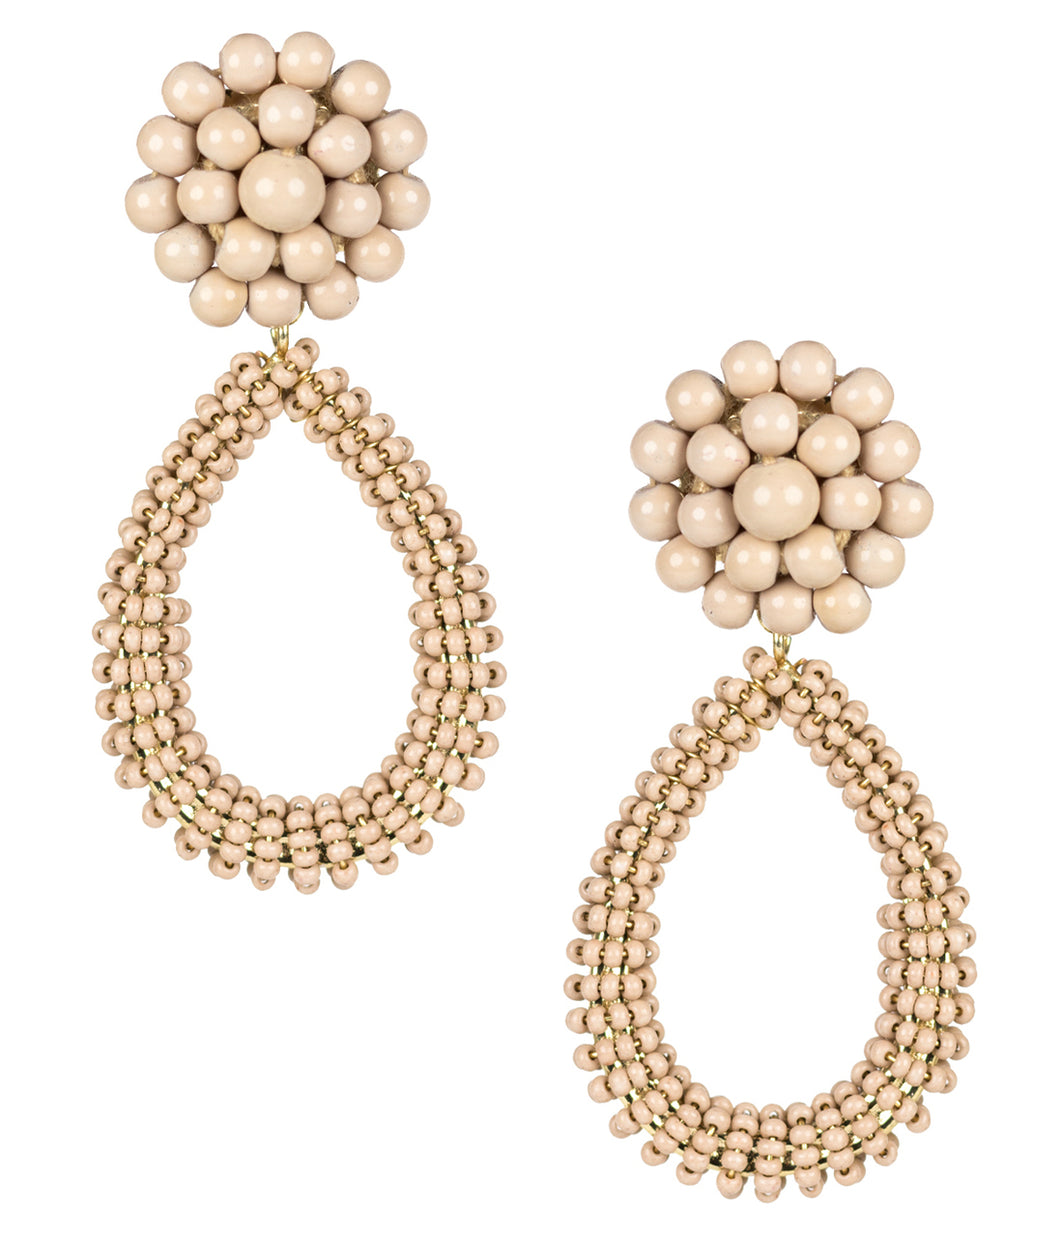 Kate Earrings by Lisi Lerch